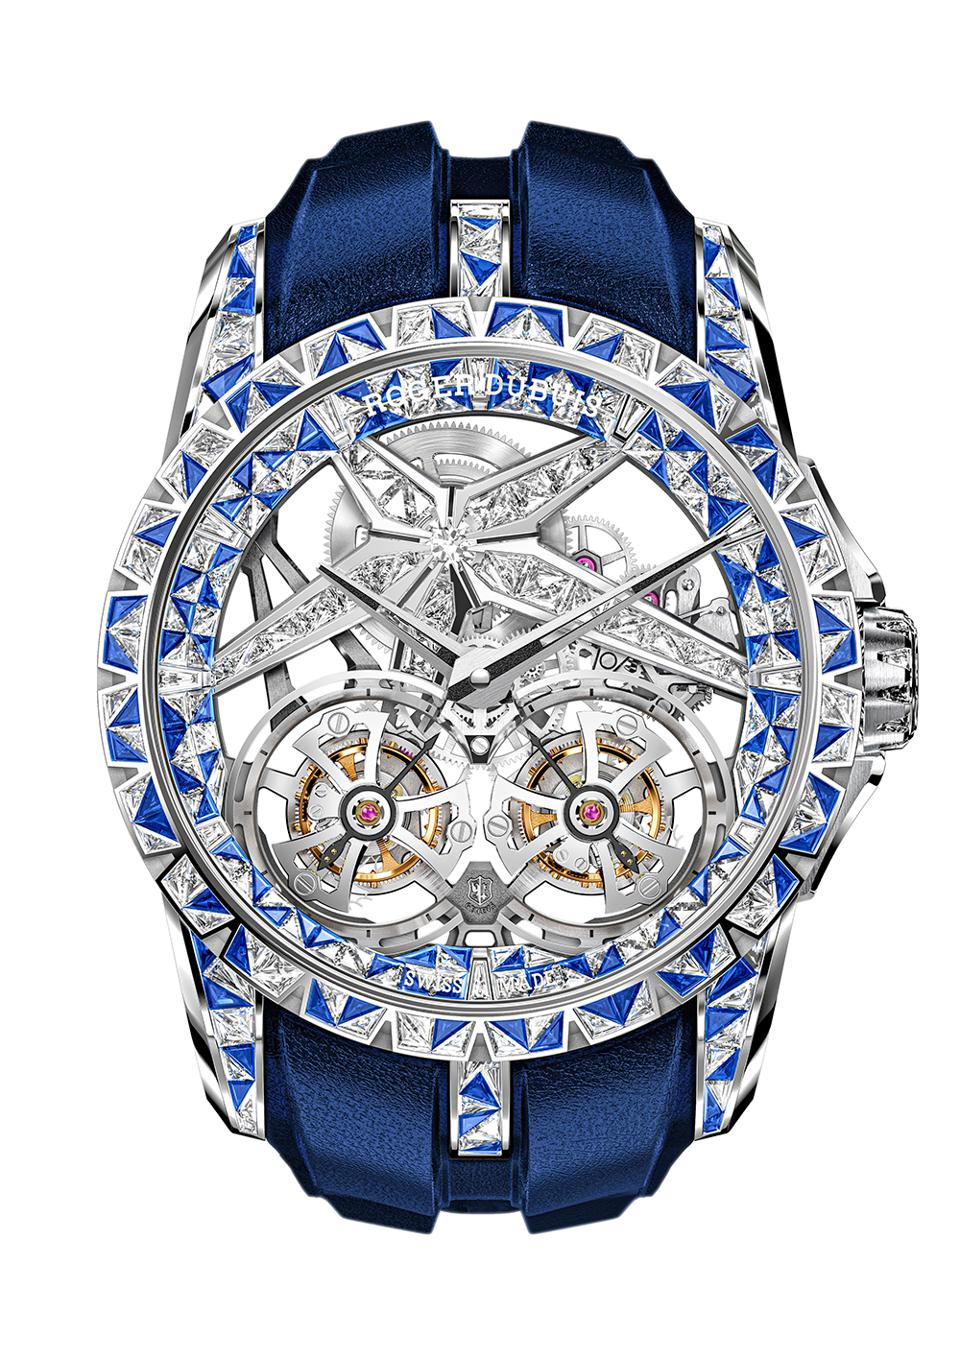 The Roger Dubuis Excalibur Superbia.